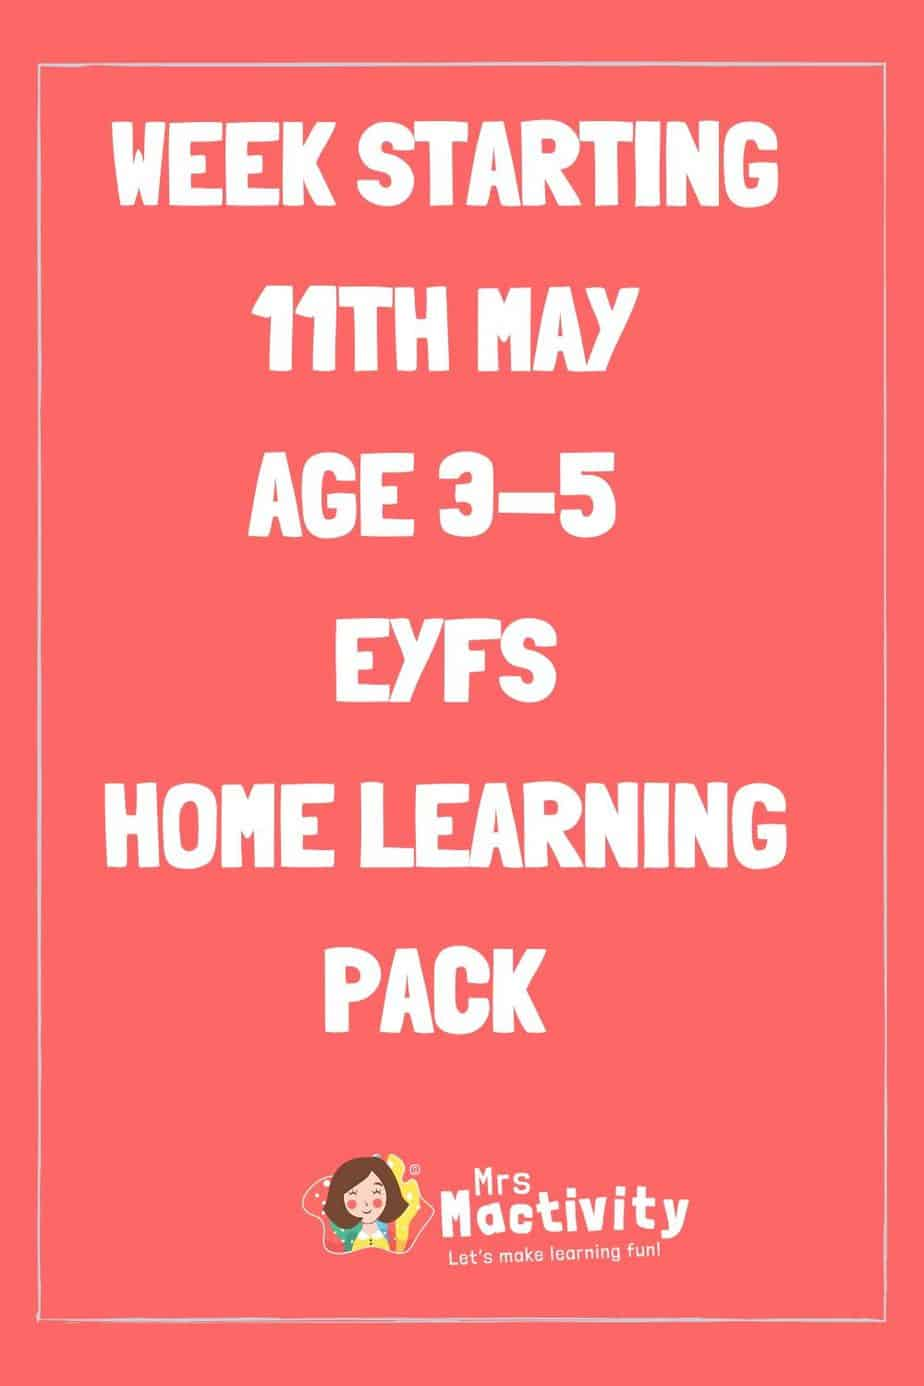 11th May Early Years (Age 3-5) Weekly Home Learning Pack